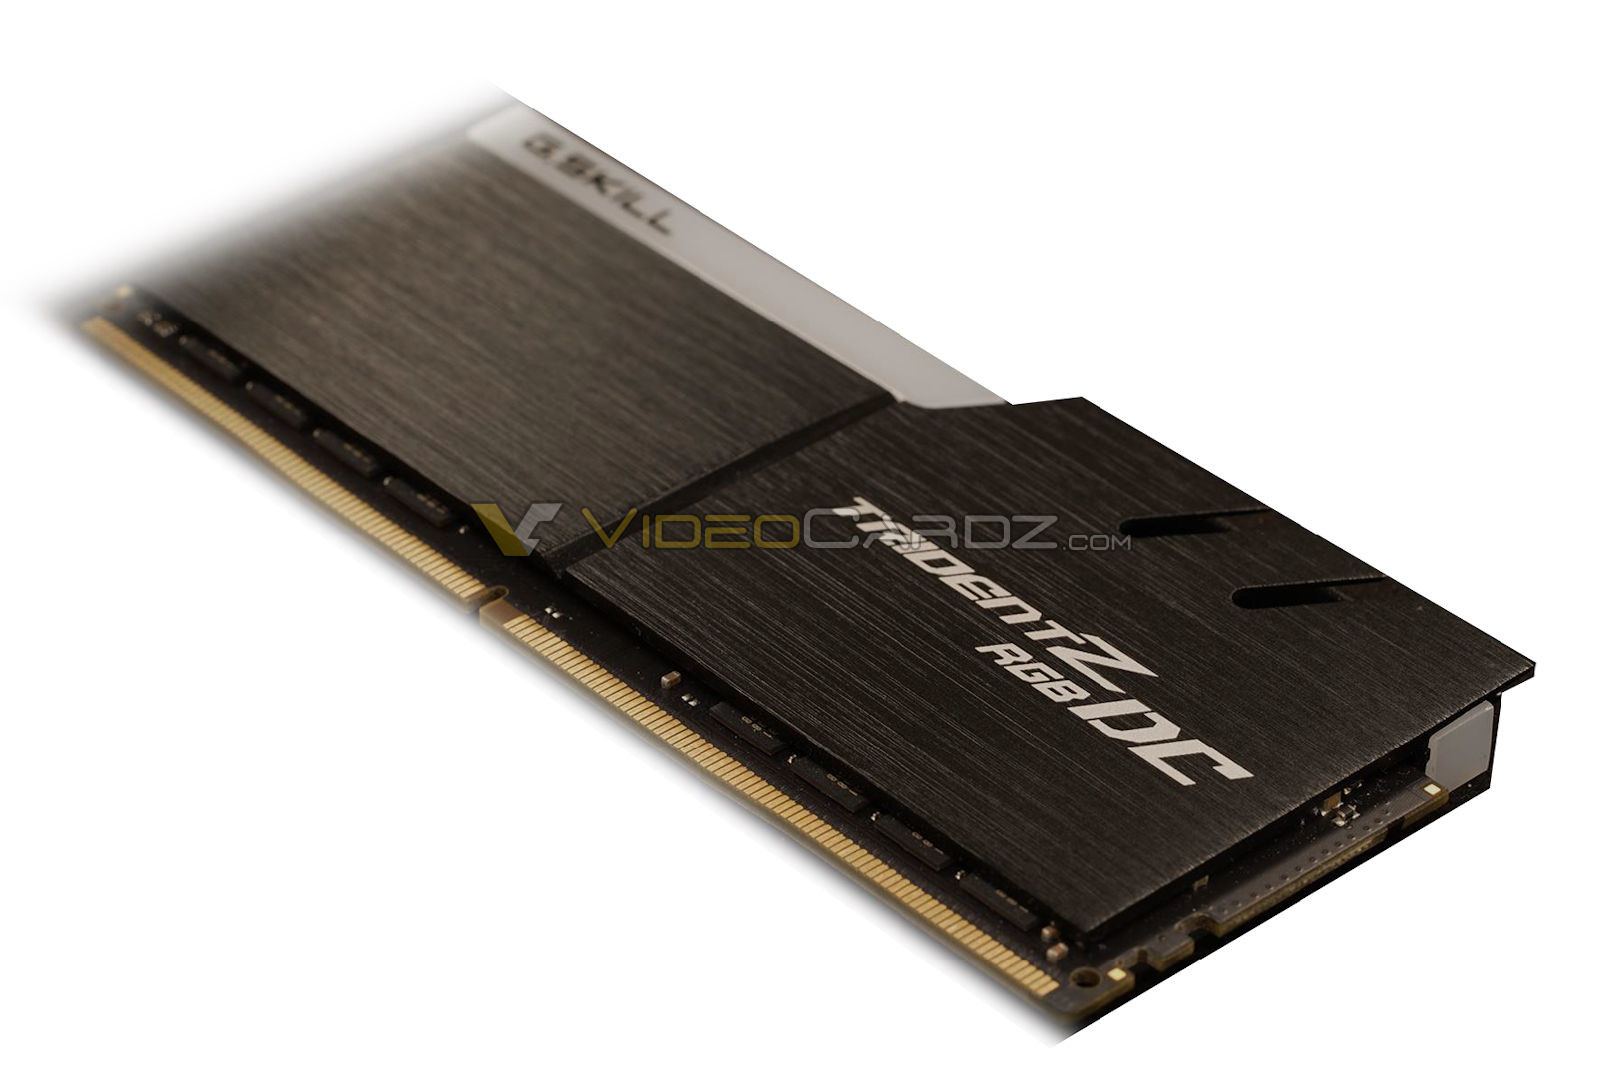 Asus DDR4 DC DIMM Double Capacity DDR4 G.SKILL Trident Z RGB DC